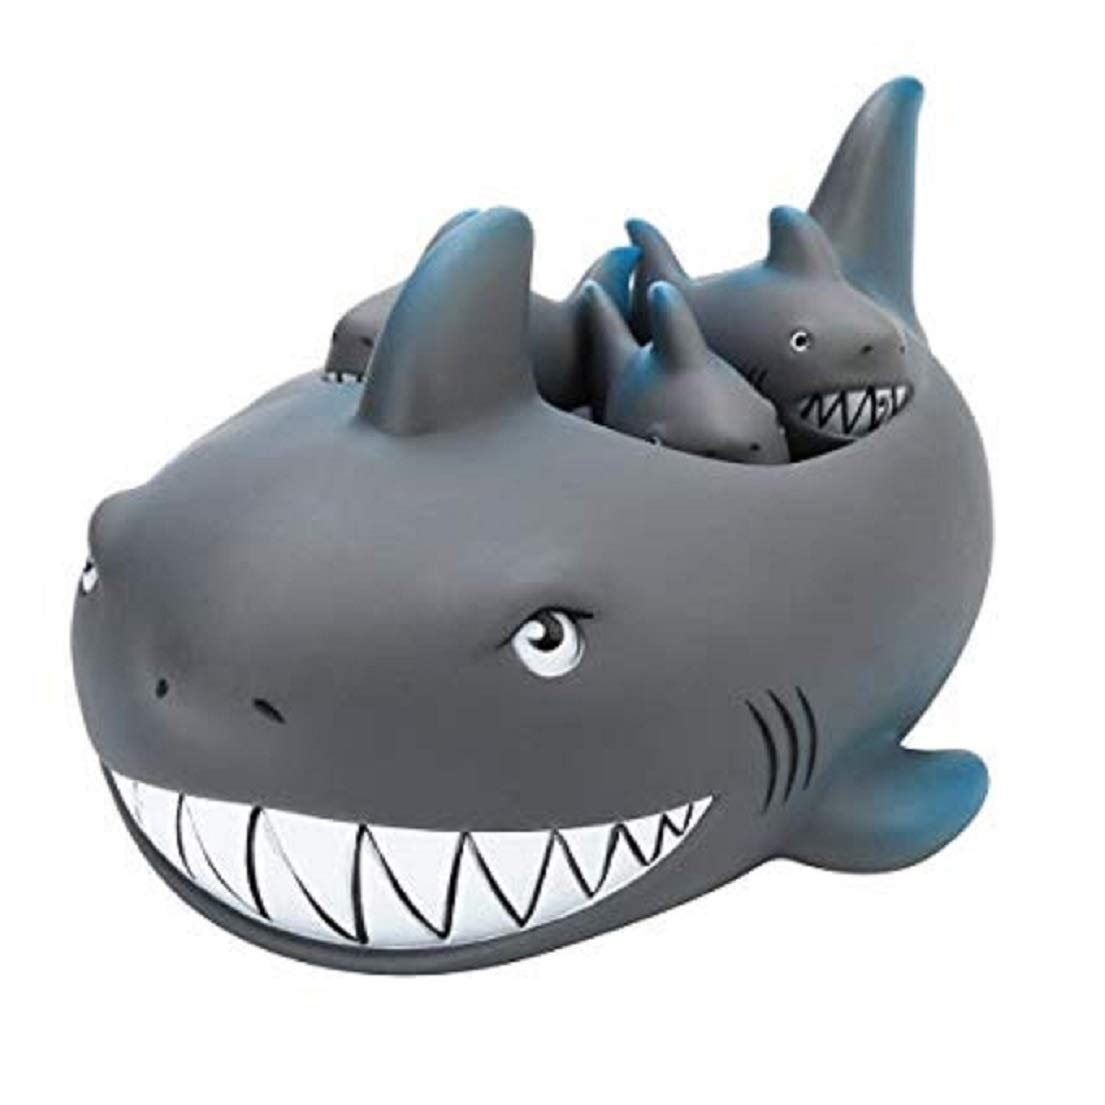 Rubber Shark Family Bathtub Pals - Floating Bath Tub Toy by Playmaker Toys 3216